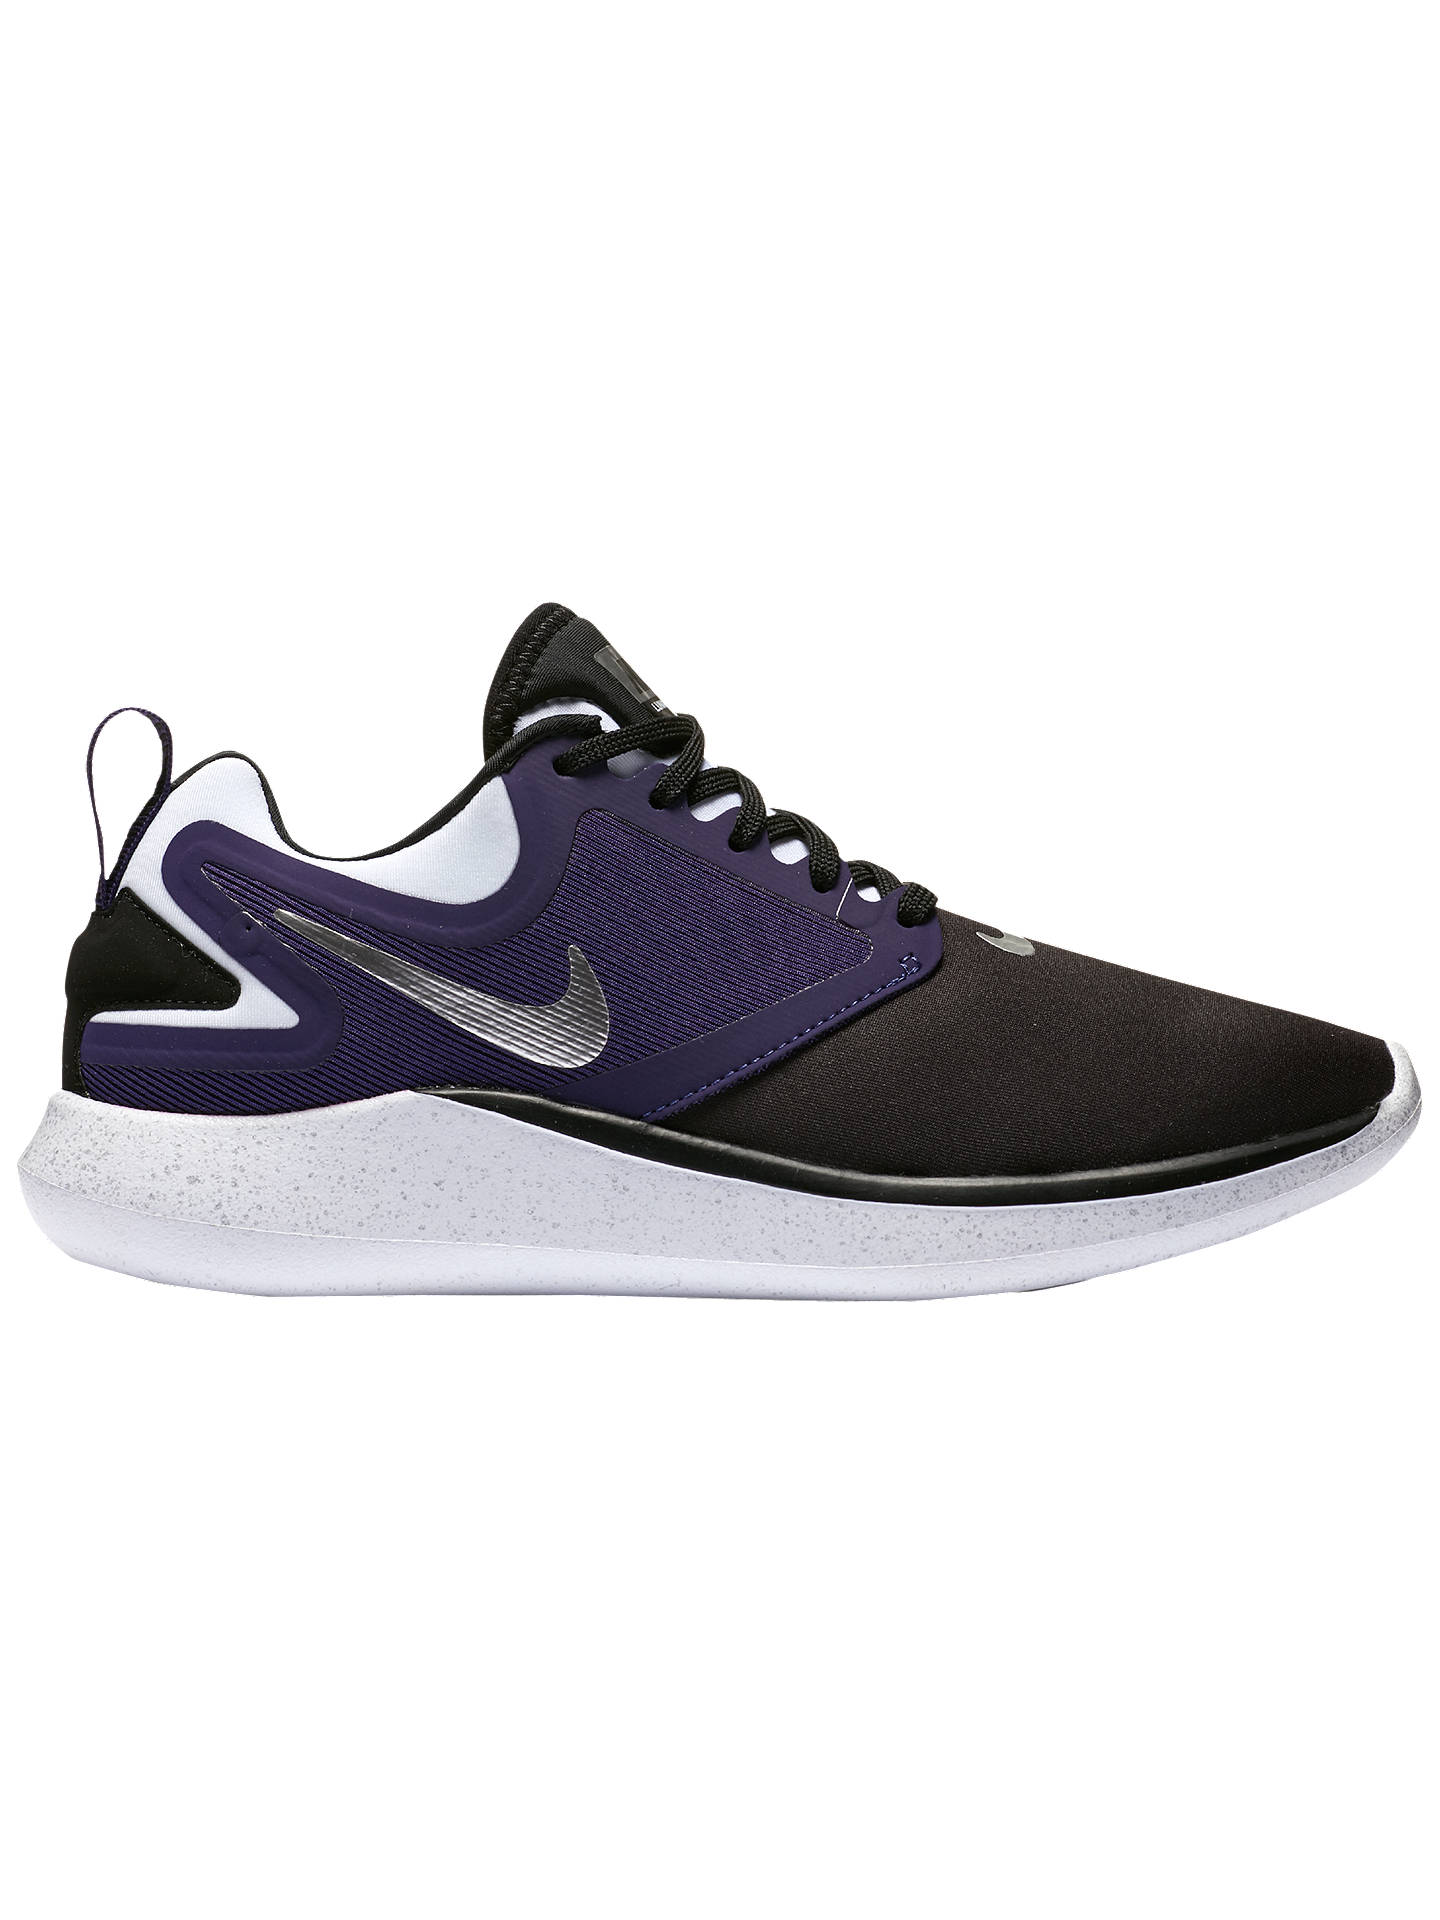 5a871716983 Nike LunarSolo Women s Running Shoes at John Lewis   Partners